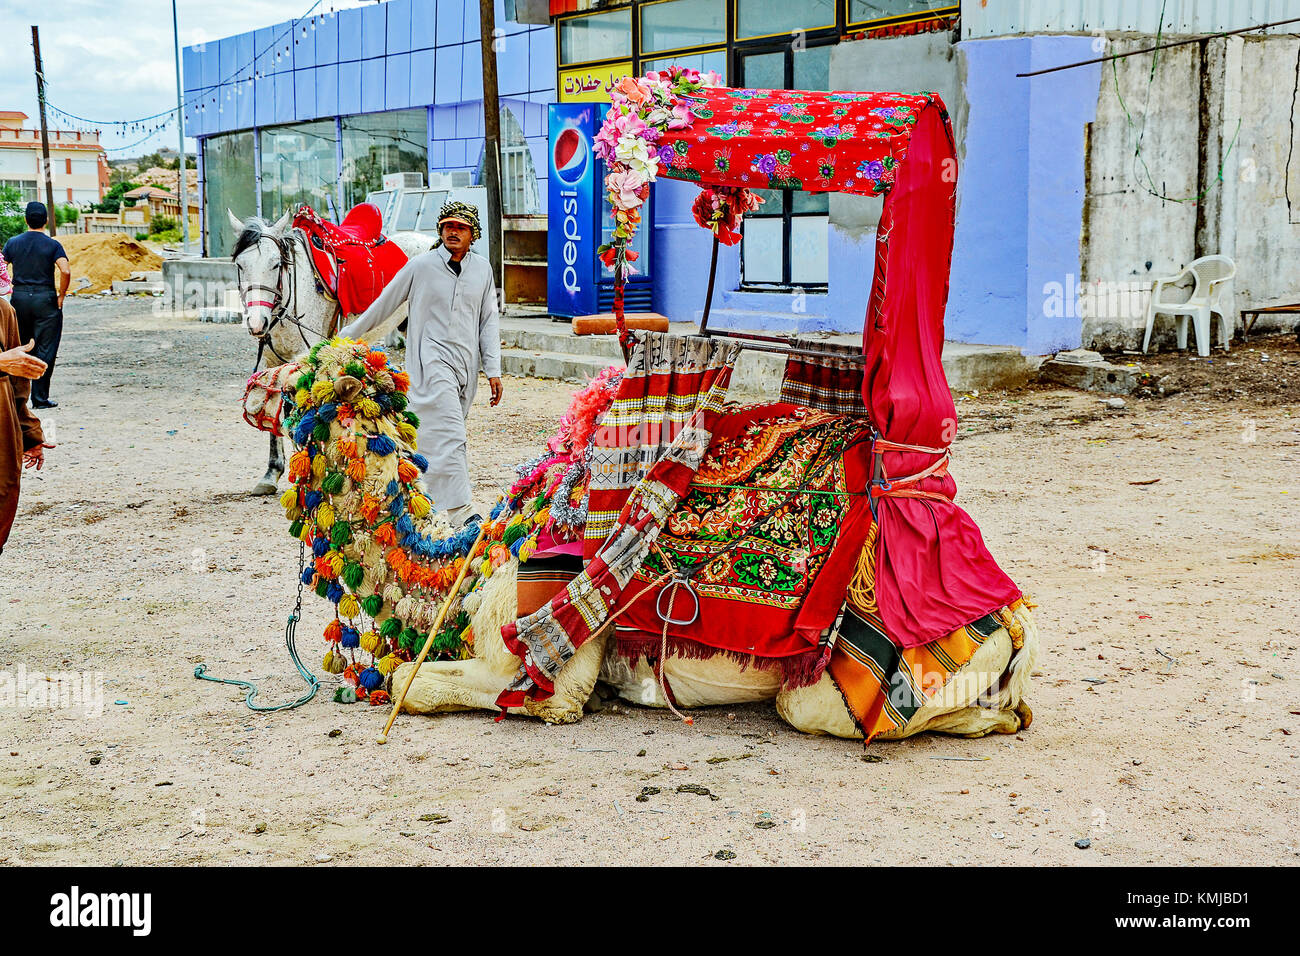 Shepherd and camels for tourist rides in Taif, Saudi Arabia. - Stock Image